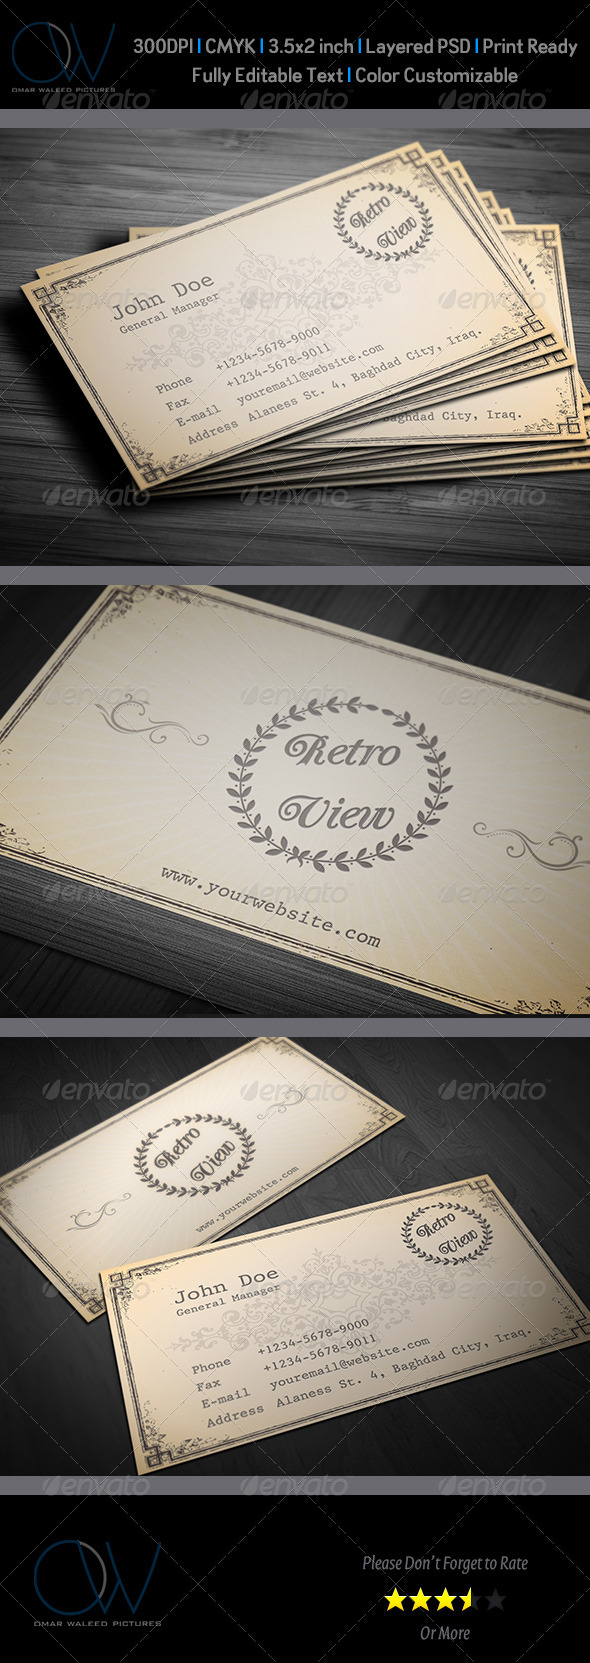 Reteo / Vintage Business Card - Retro/Vintage Business Cards